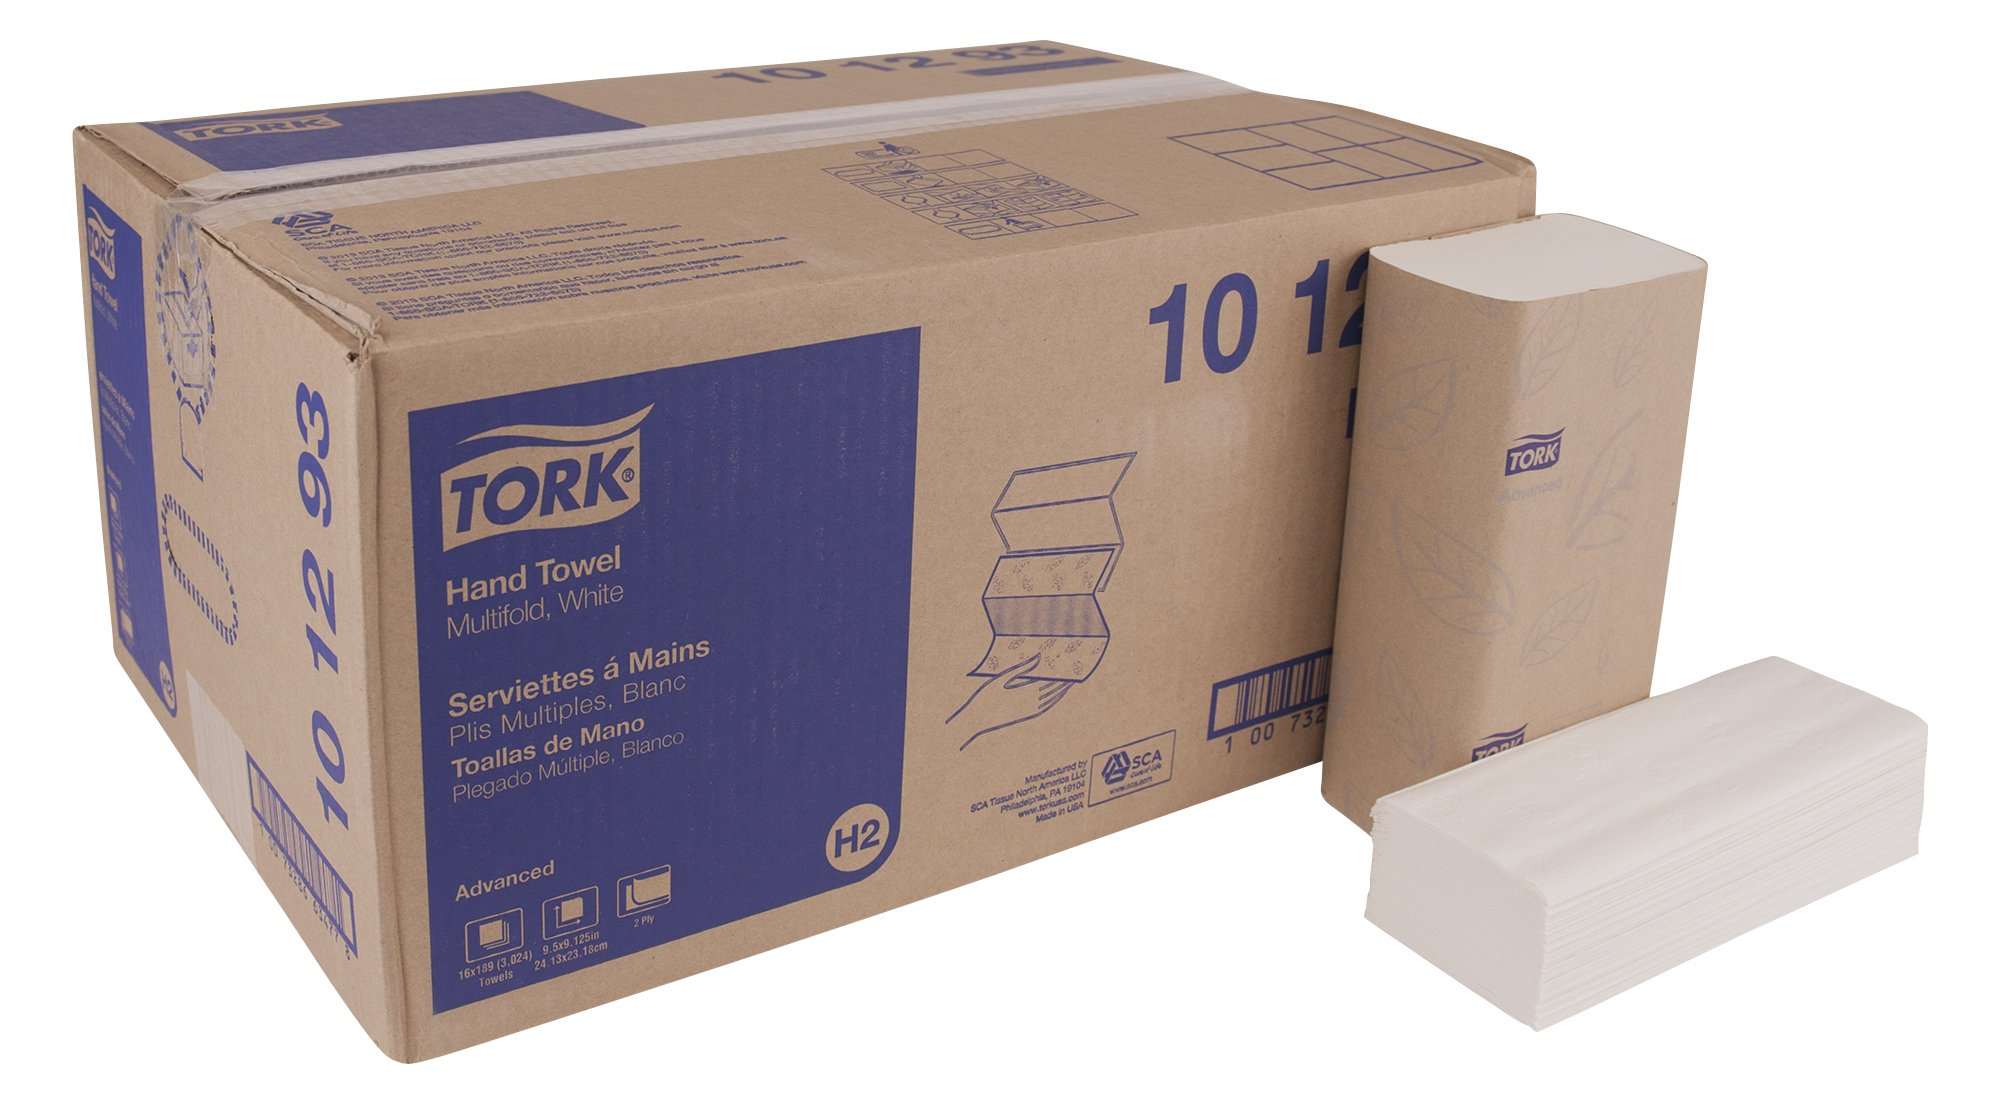 Tork Advanced 101293 Soft Xpress Multifold Paper Hand Towel, 3-Panel, 2-Ply, 9.125'' Width x 9.5'' Length, White (Case of 16 Packs, 189 per Pack, 3024 Towels) by Tork